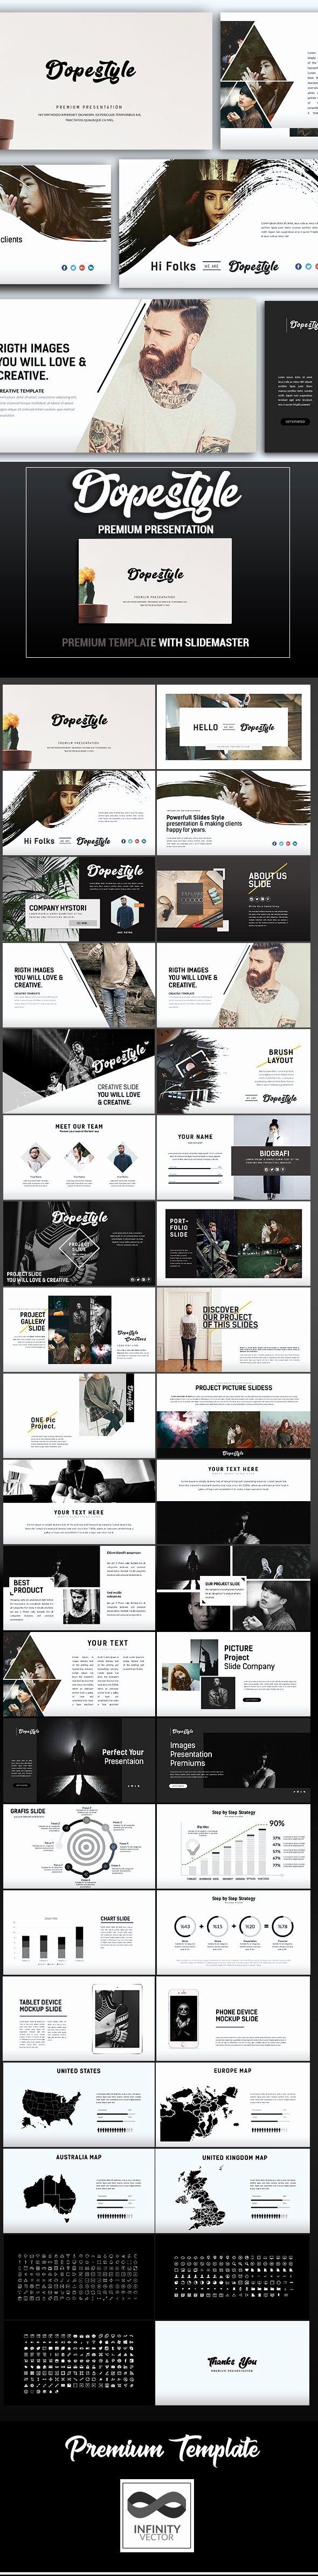 Yearbook Template Powerpoint Inspirational Best 25 Yearbook Template Ideas On Pinterest